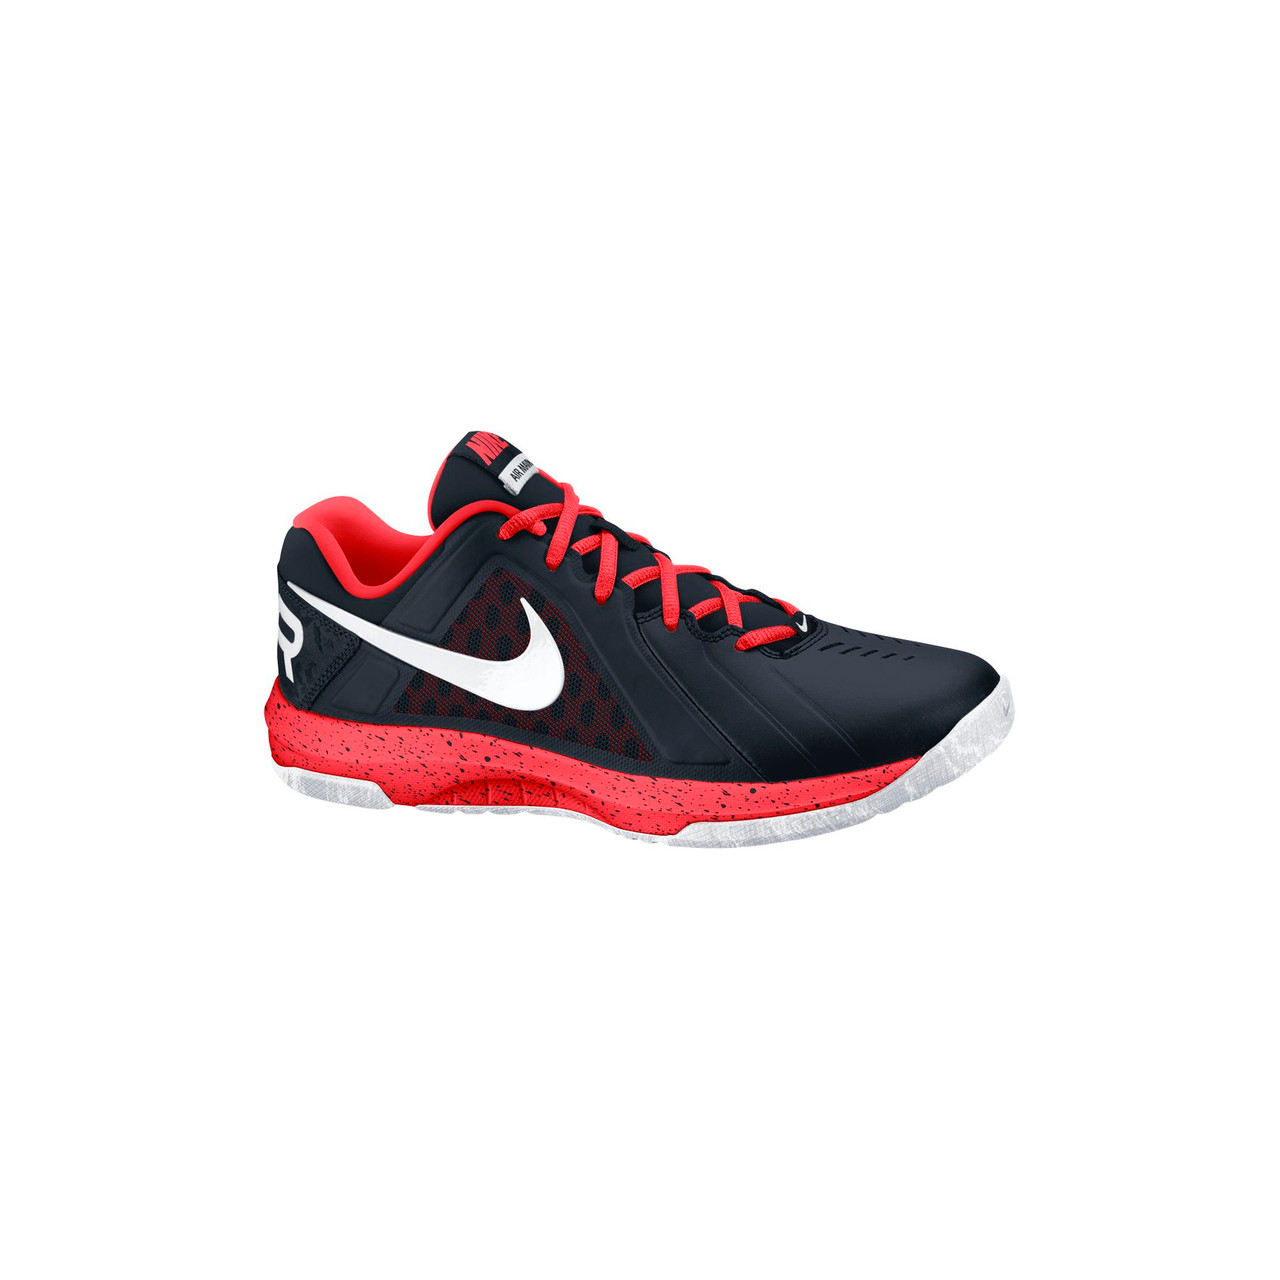 online store 375dd d5db9 Men s Nike Air Mavin Low Basketball Shoe - Sieverts Sporting Goods